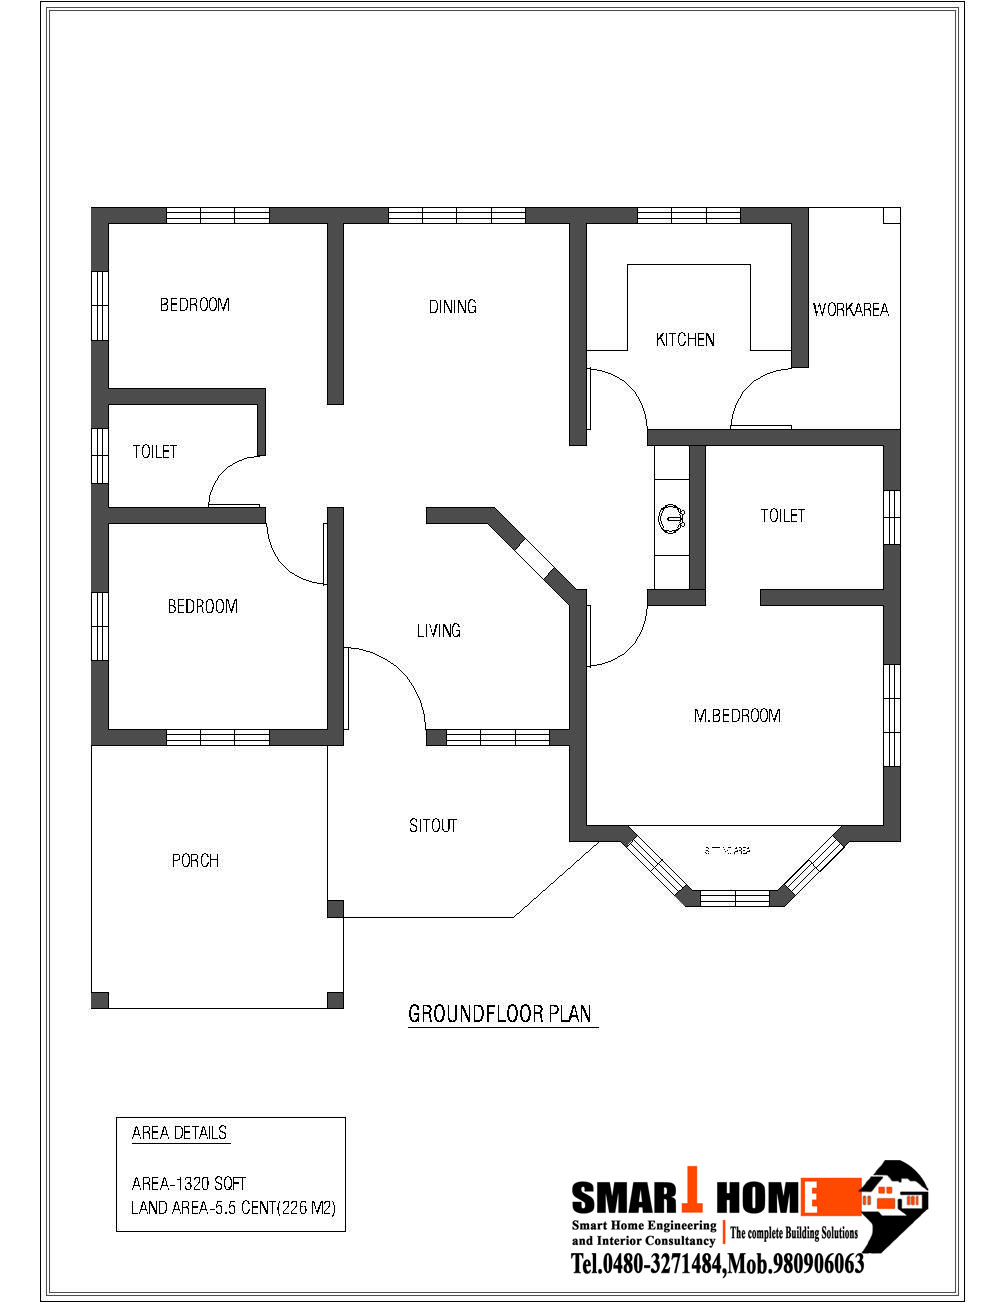 House plans and design sample architectural designs of for 3 bedroom floor plans